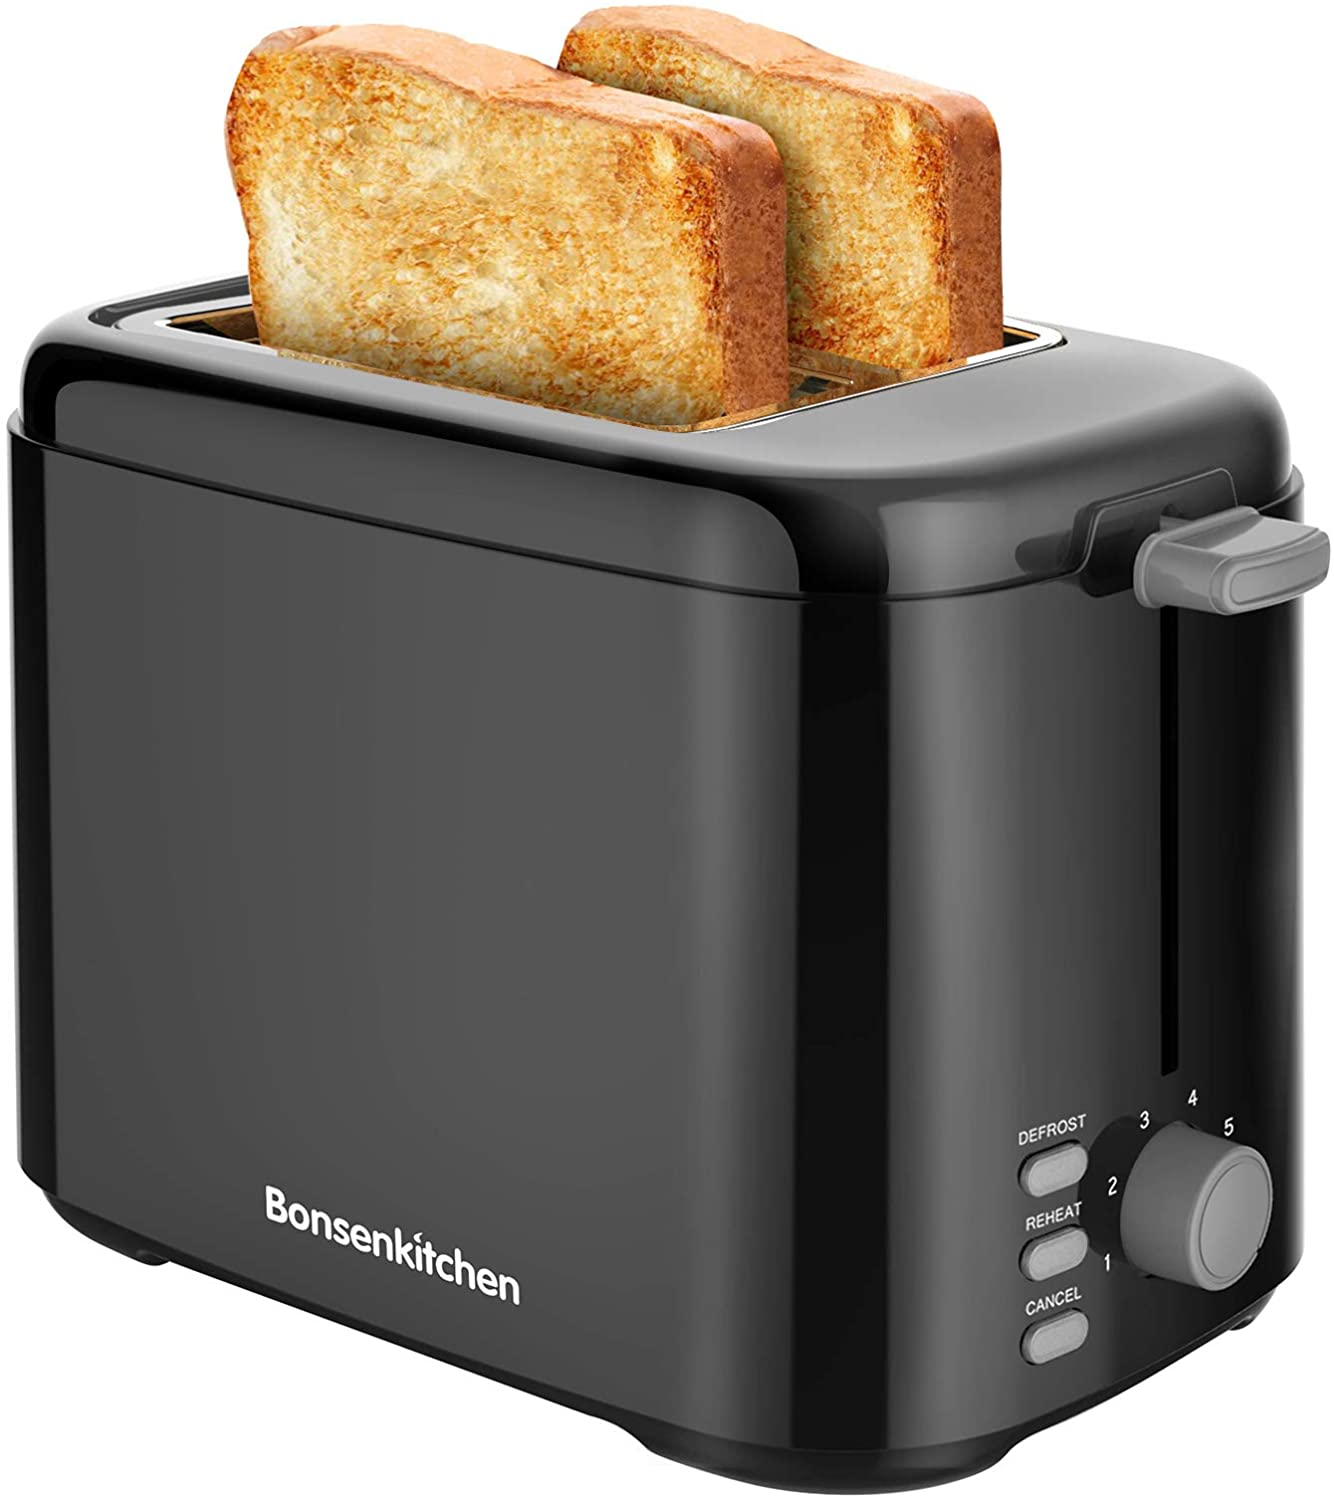 2-Slice Retro Toaster with 7 Shade Settings,Compact Toaster with Cancel, Defrost and Reheat Functions,Slide-Out Crumb Tray ,800W,Black